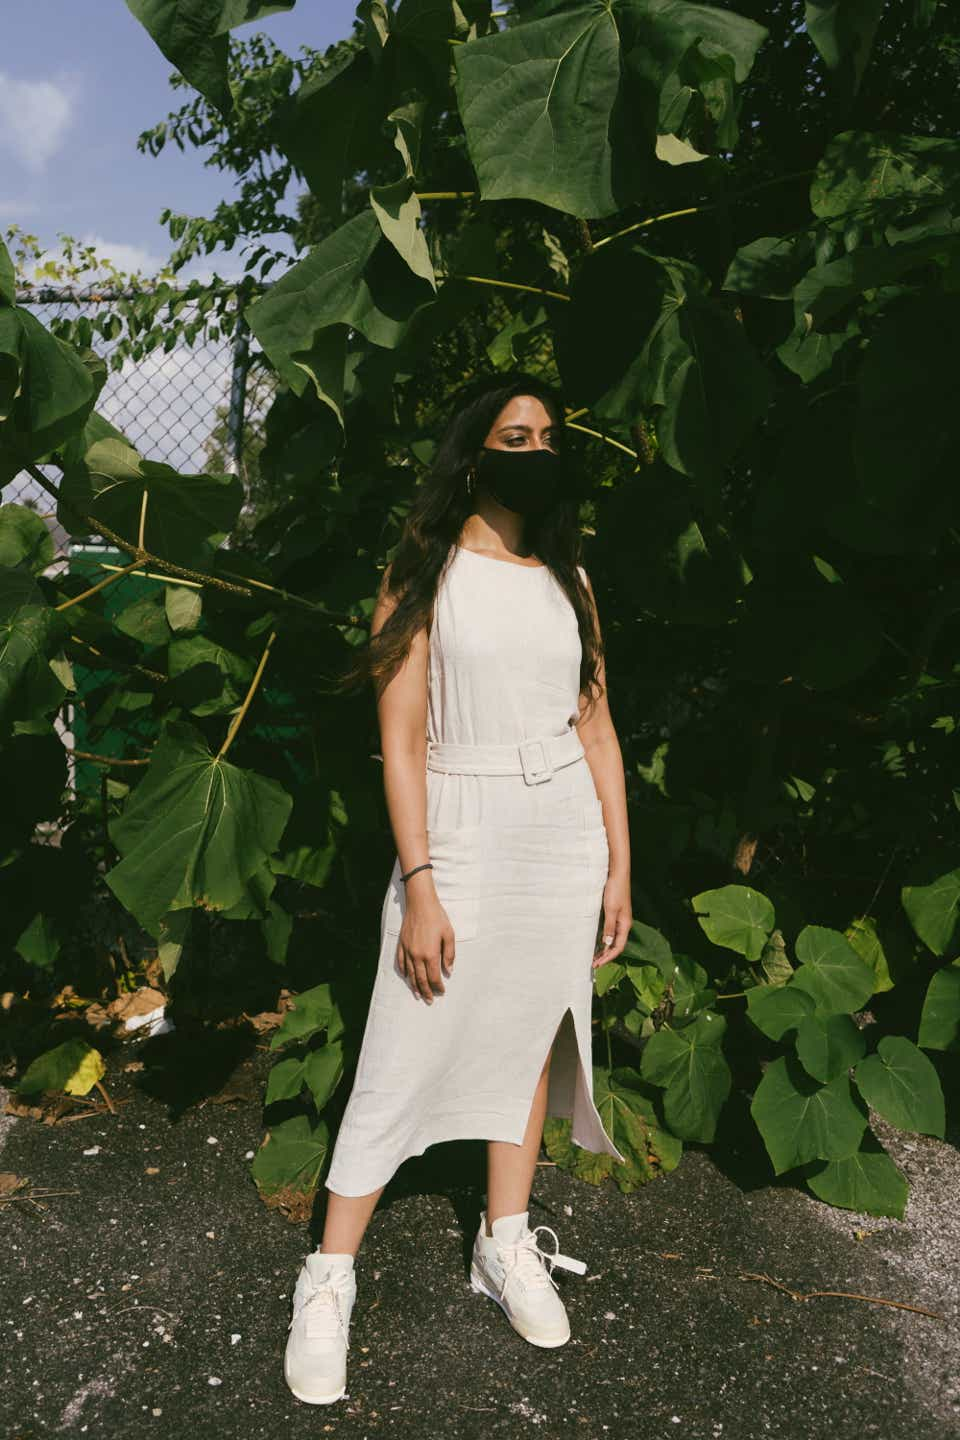 Kashish is wearing a black mask with a cream-colored linen, belted dress with a slit. For footwear, she's wearing high-top Off-White x Nike/Jordan sneakers.